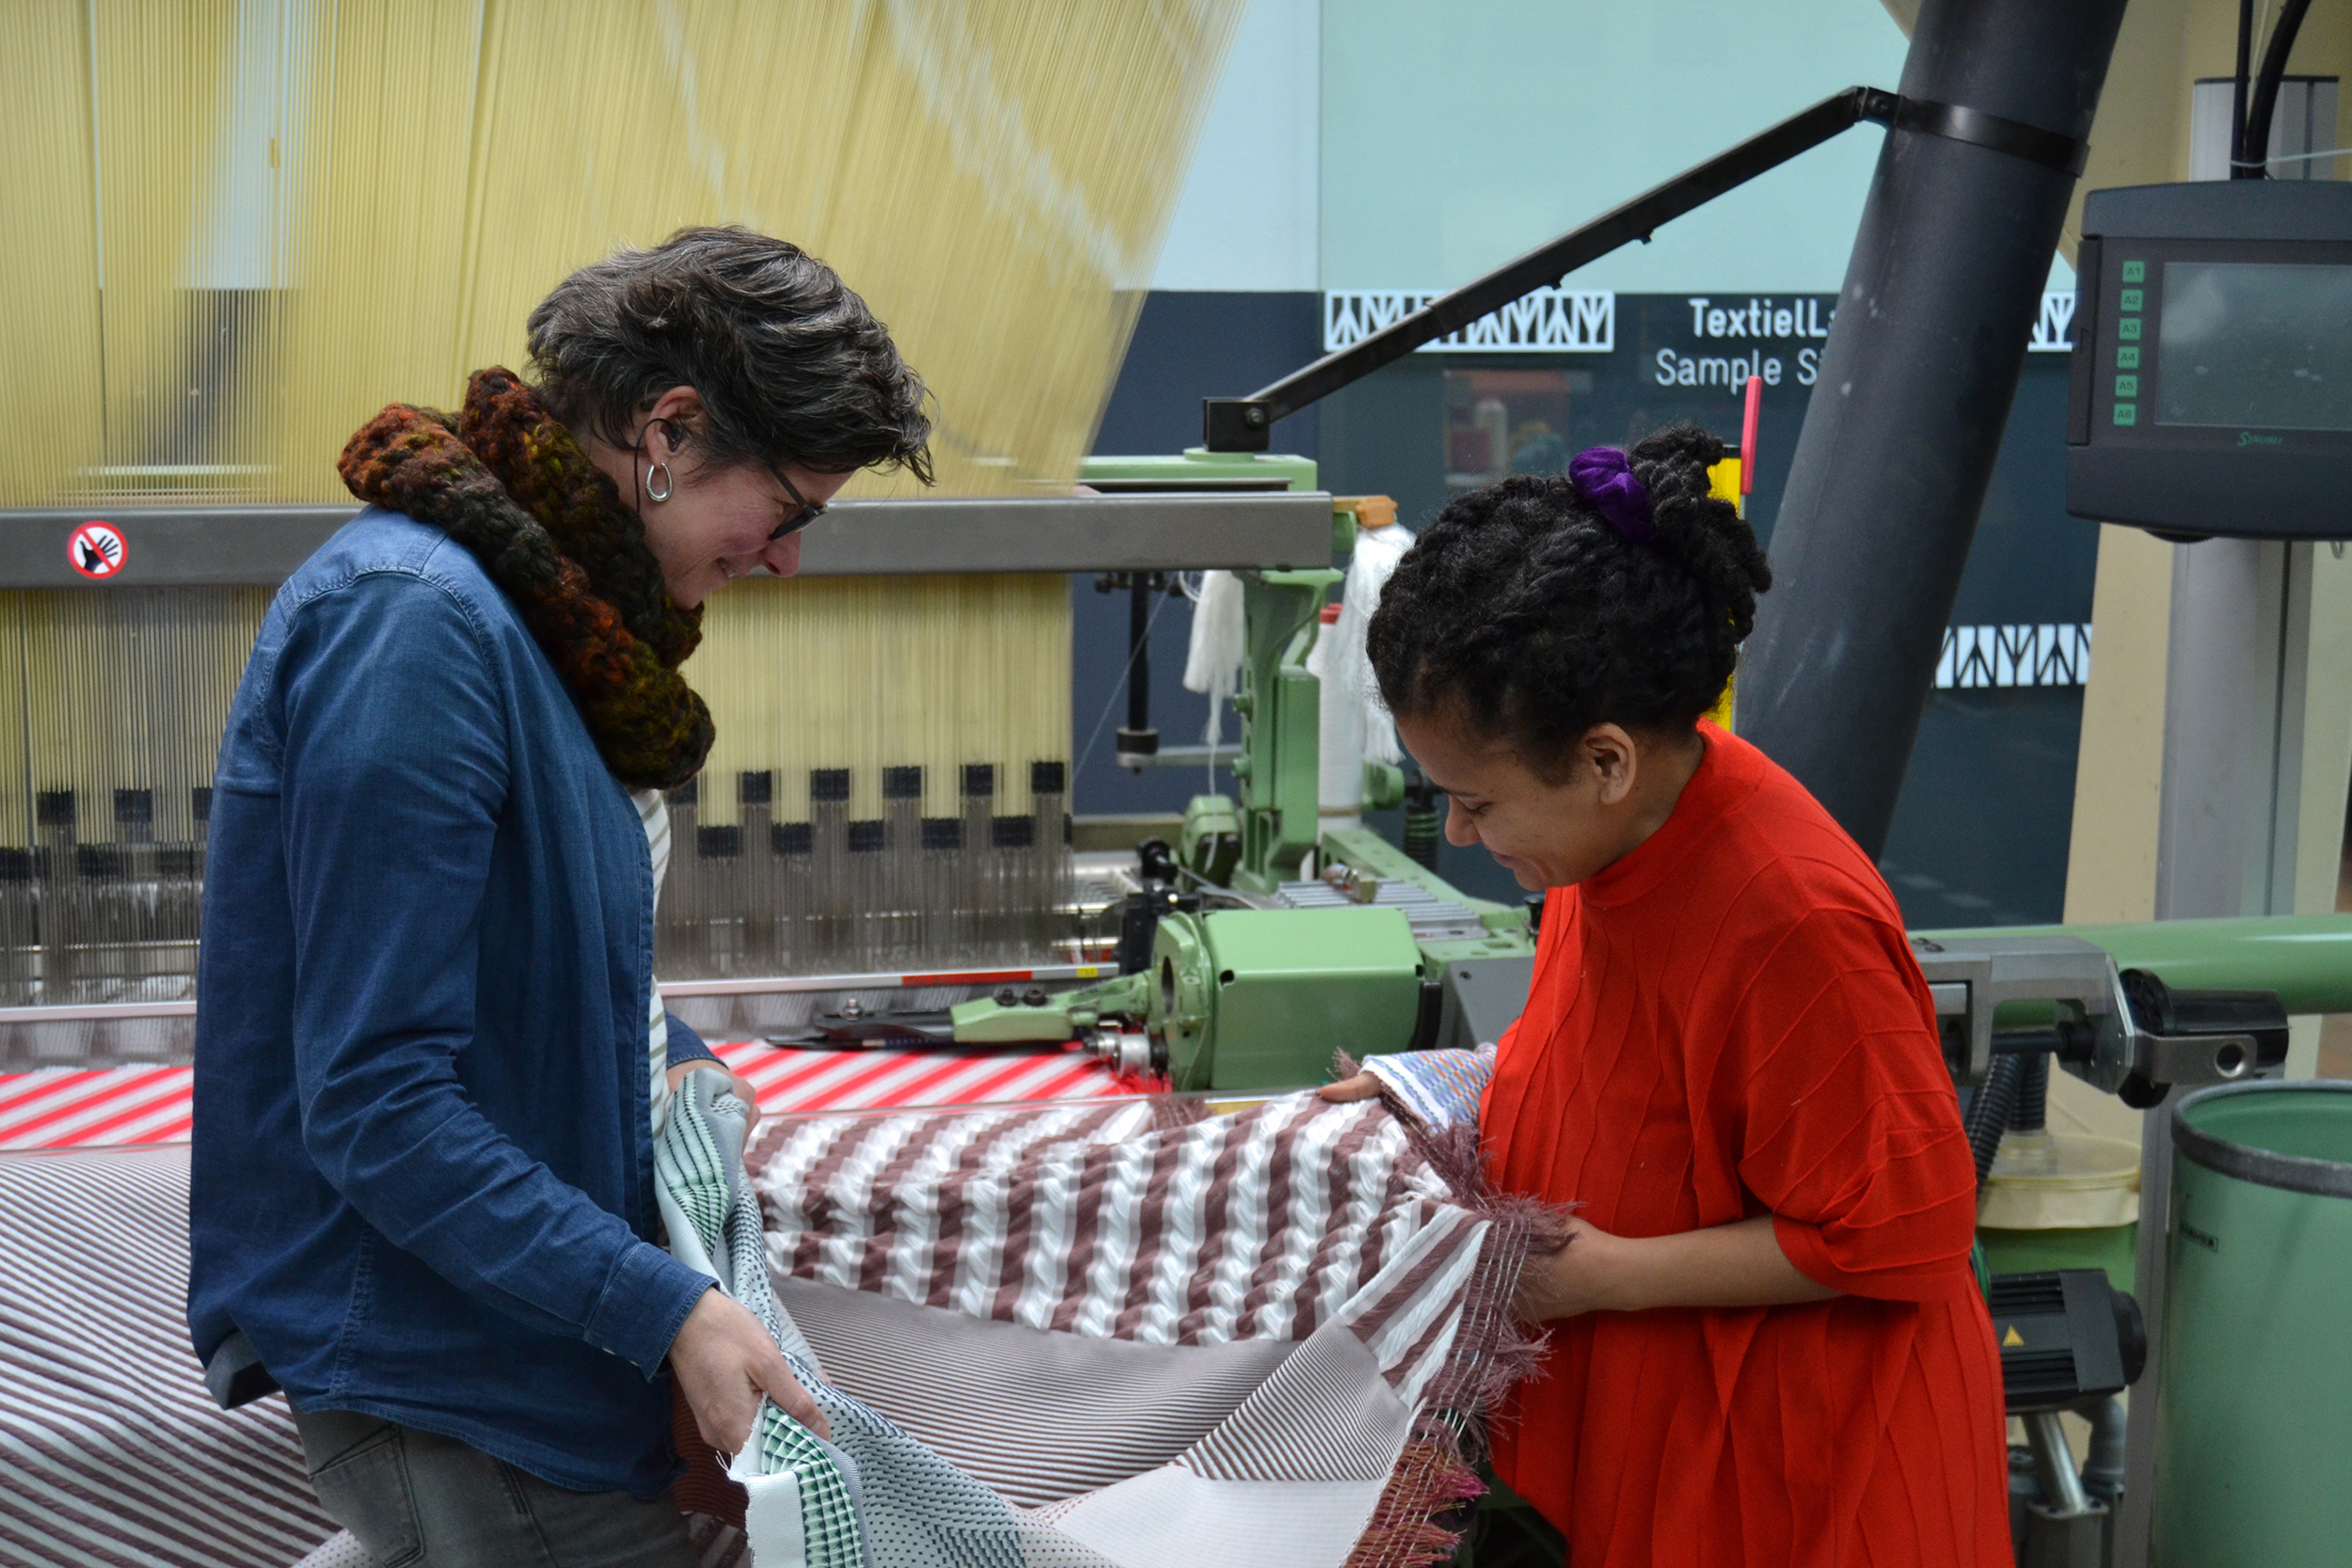 Marjan Van Oeffelt, product developer at the TextielLab and Ta'Yali Wetzel - both smiling - stand facing each other holding and examining a woven fabric that just came off the weaving machine they are stading in front of. The Jacquard harness and part of the weft rapier are visible in the background.